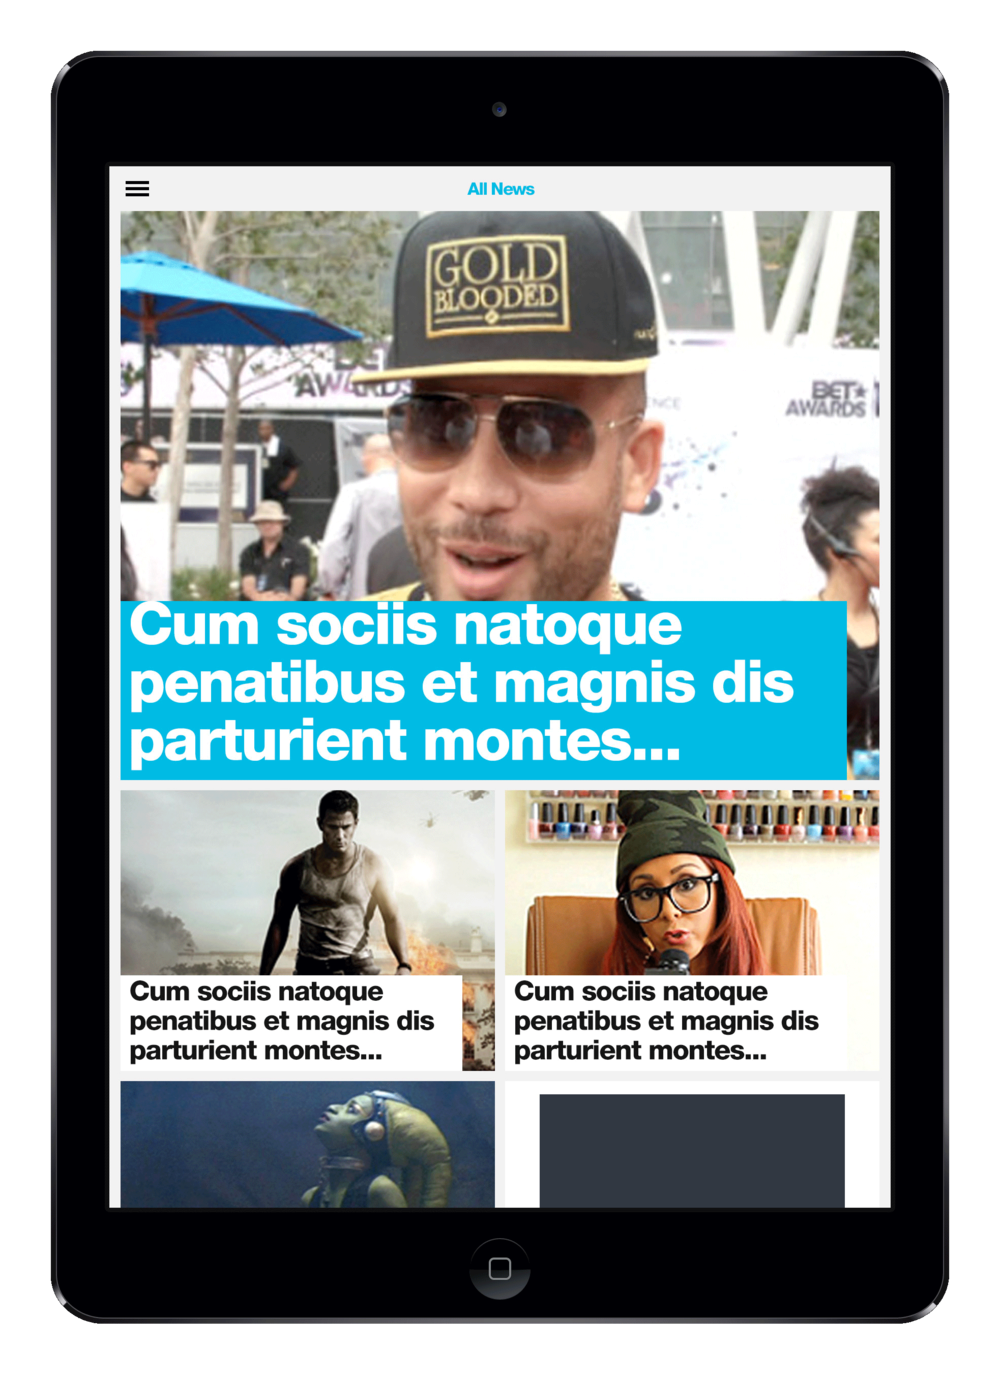 mtv-news-ipad-screens-02.png